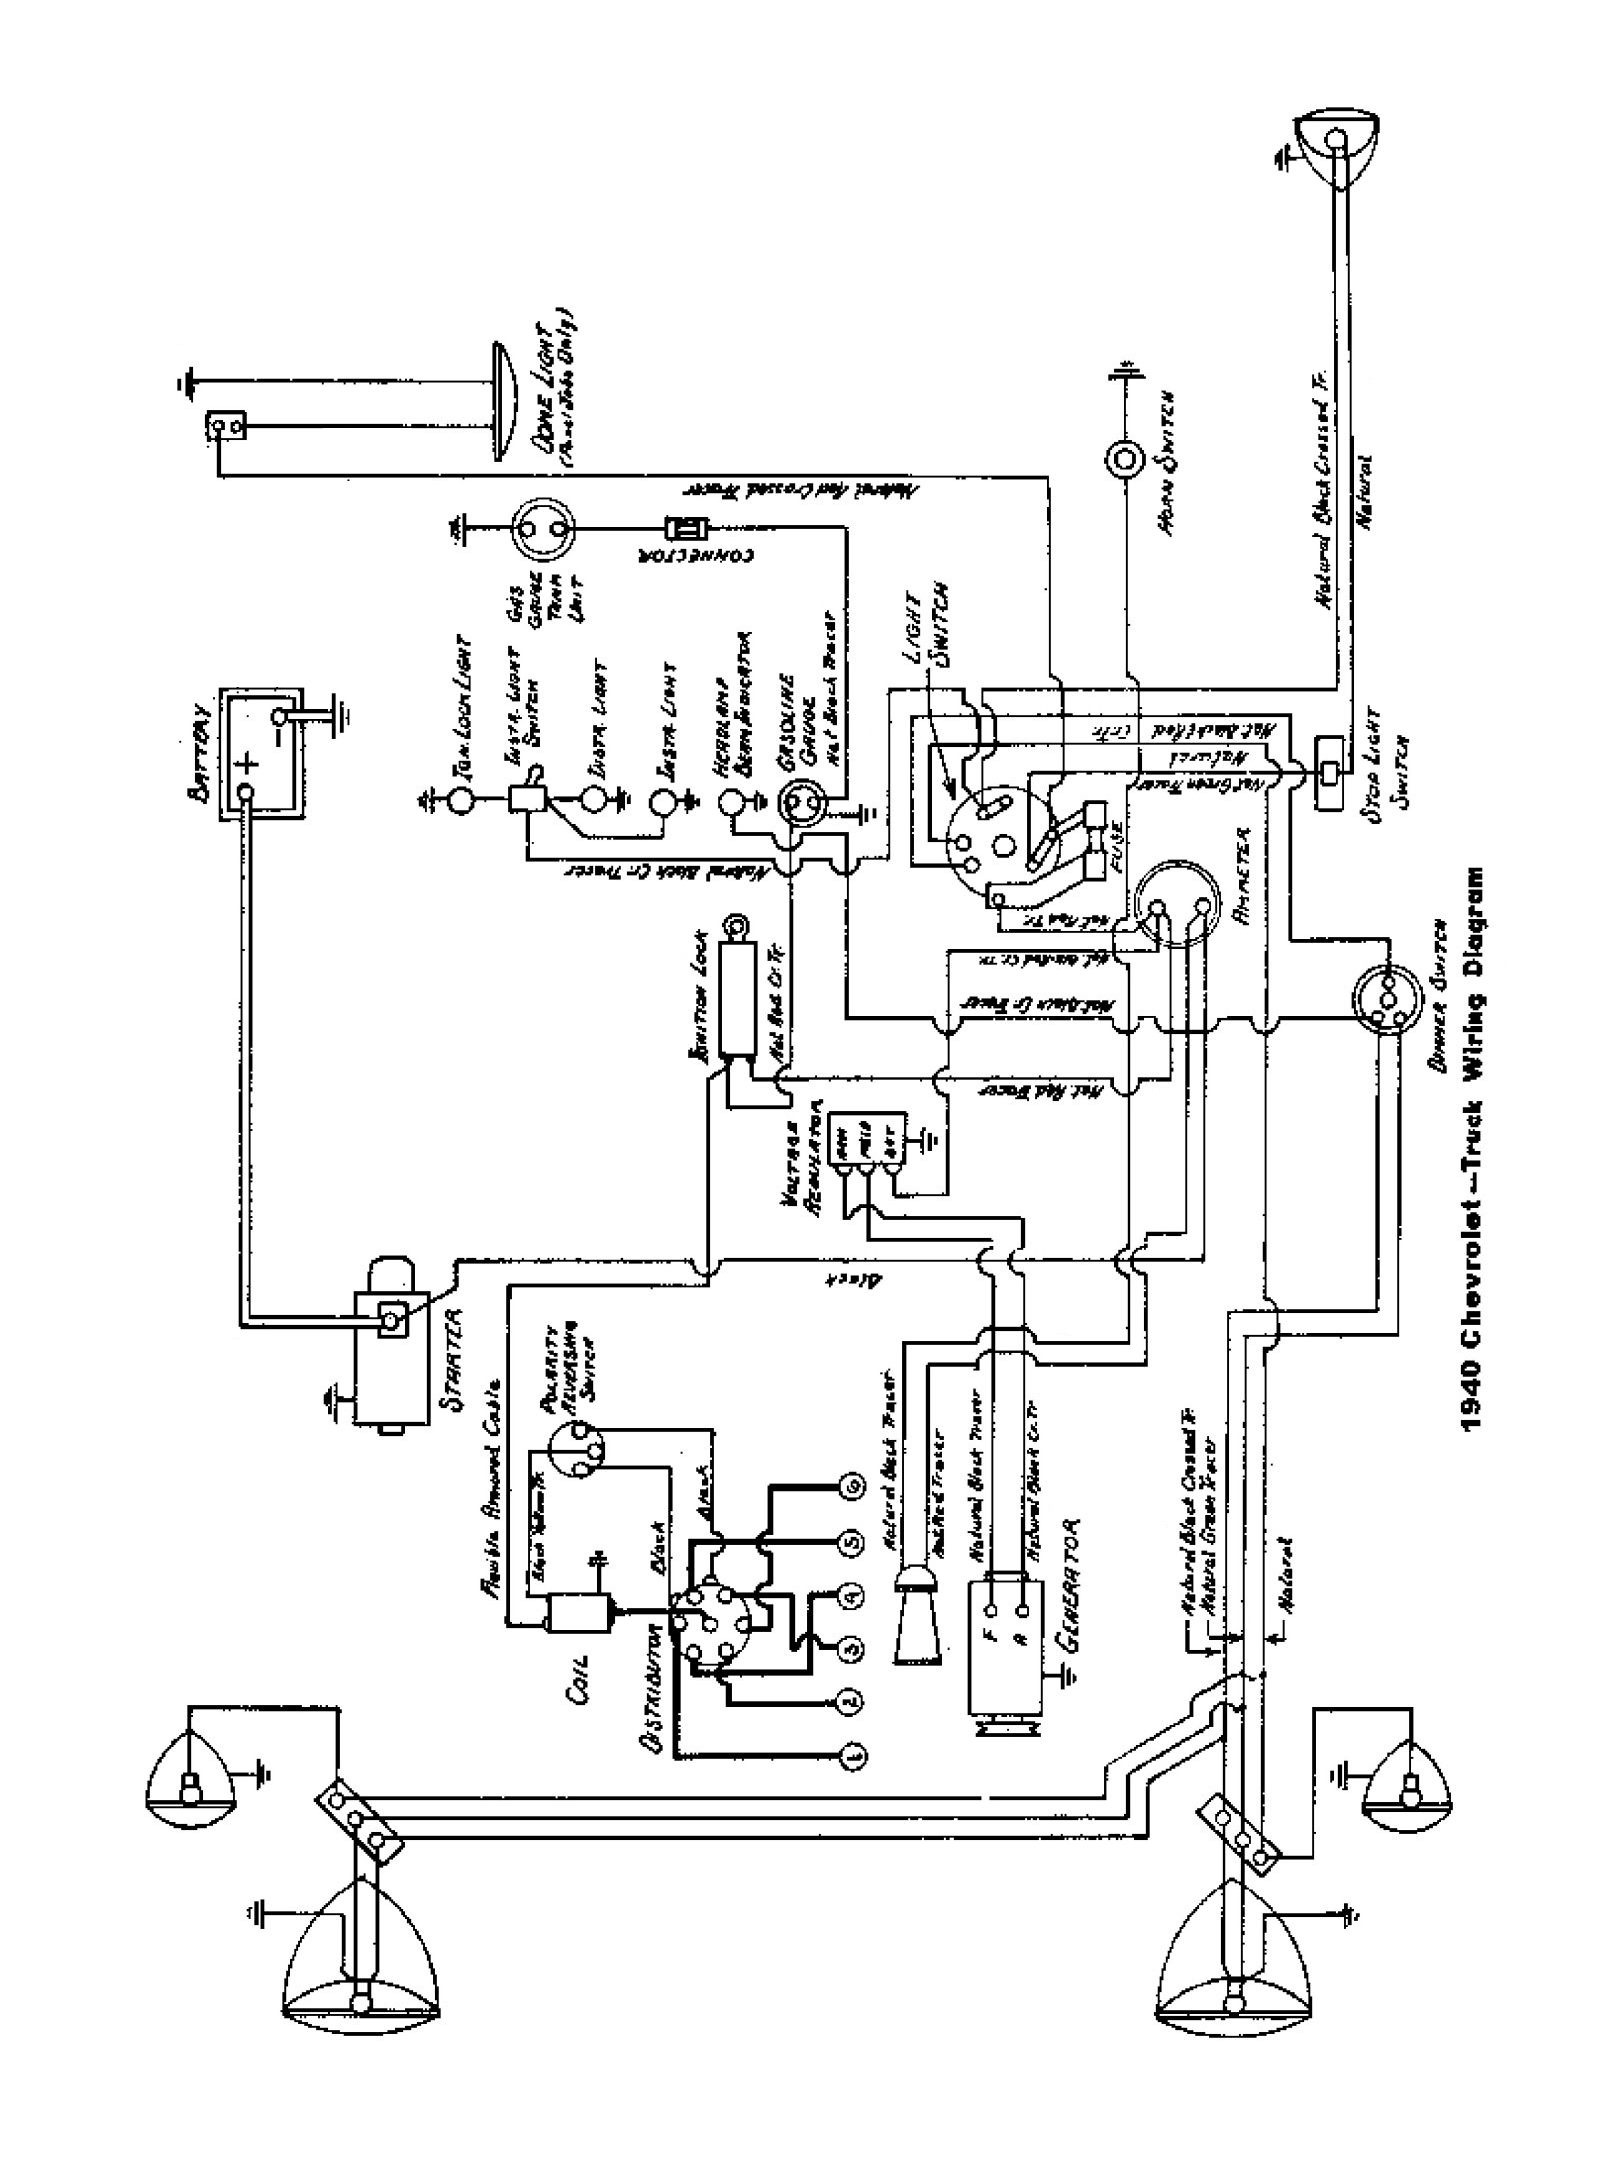 wiring diagram for 1959 chevy delivery truck wiring diagram